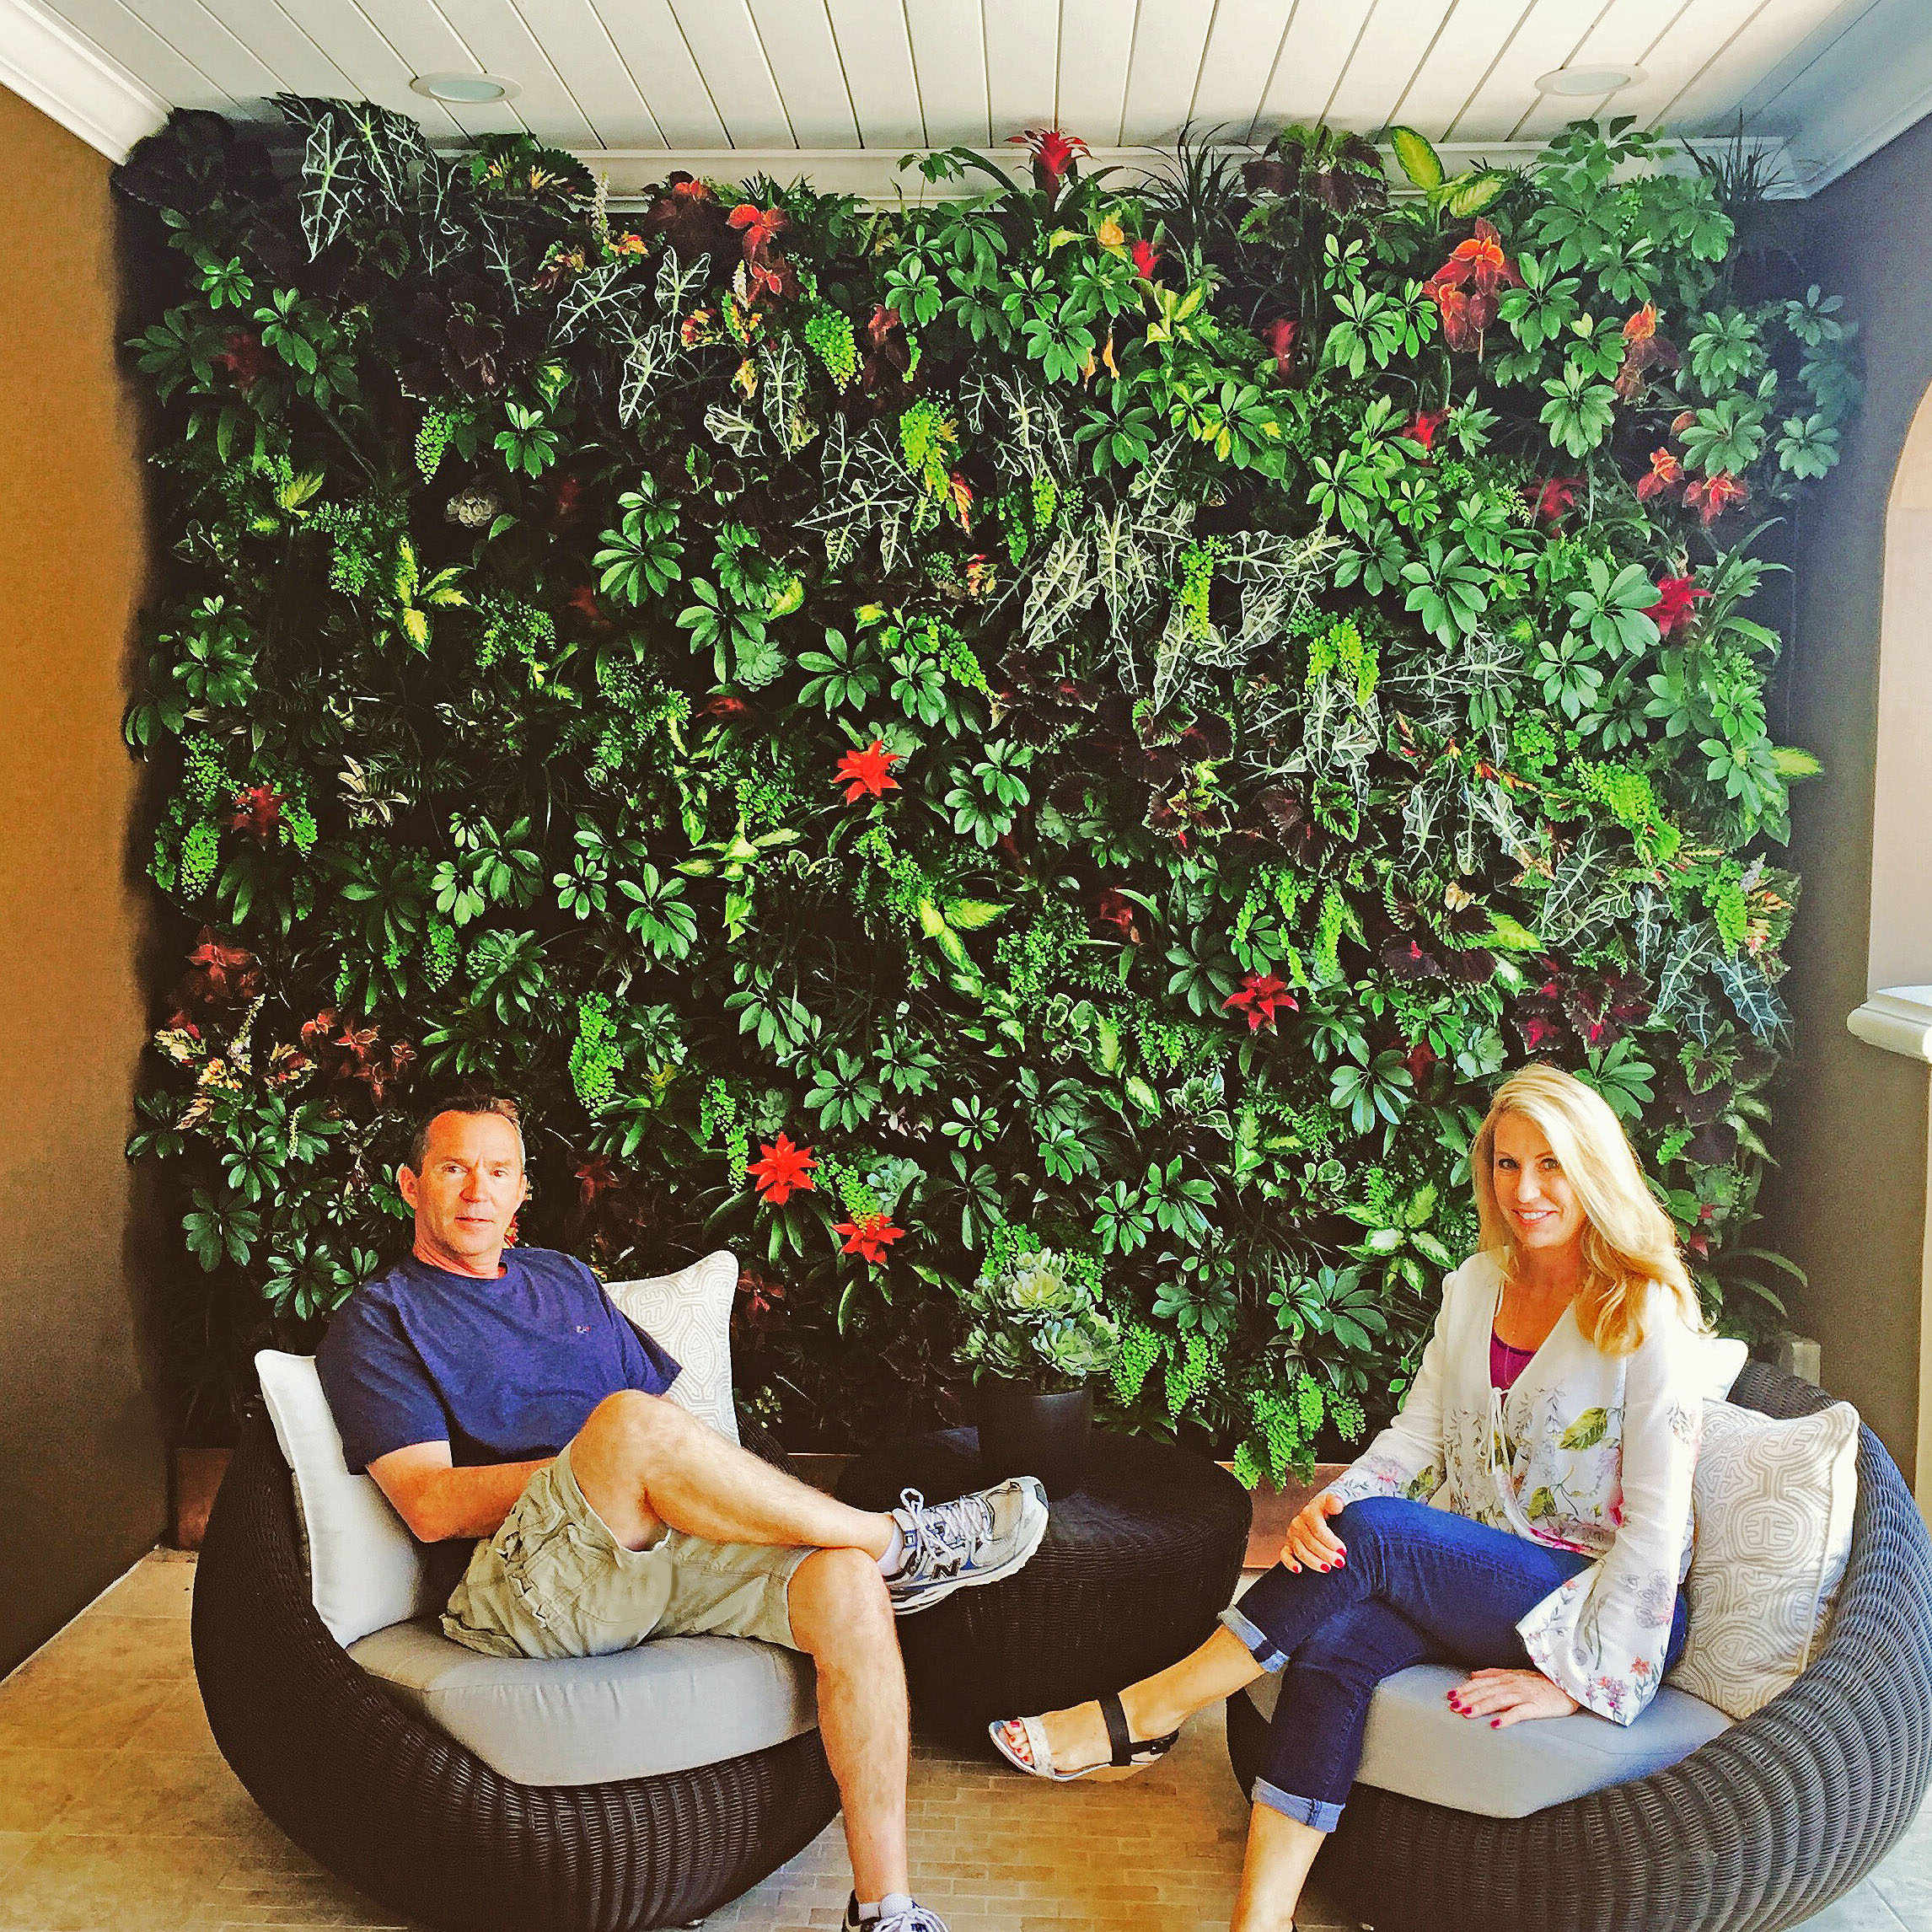 Living Wall by MikeMcCall Landscape Incfor Toll Brothers Model Homes in San Ramon, California. Florafelt Vertical Garden System.